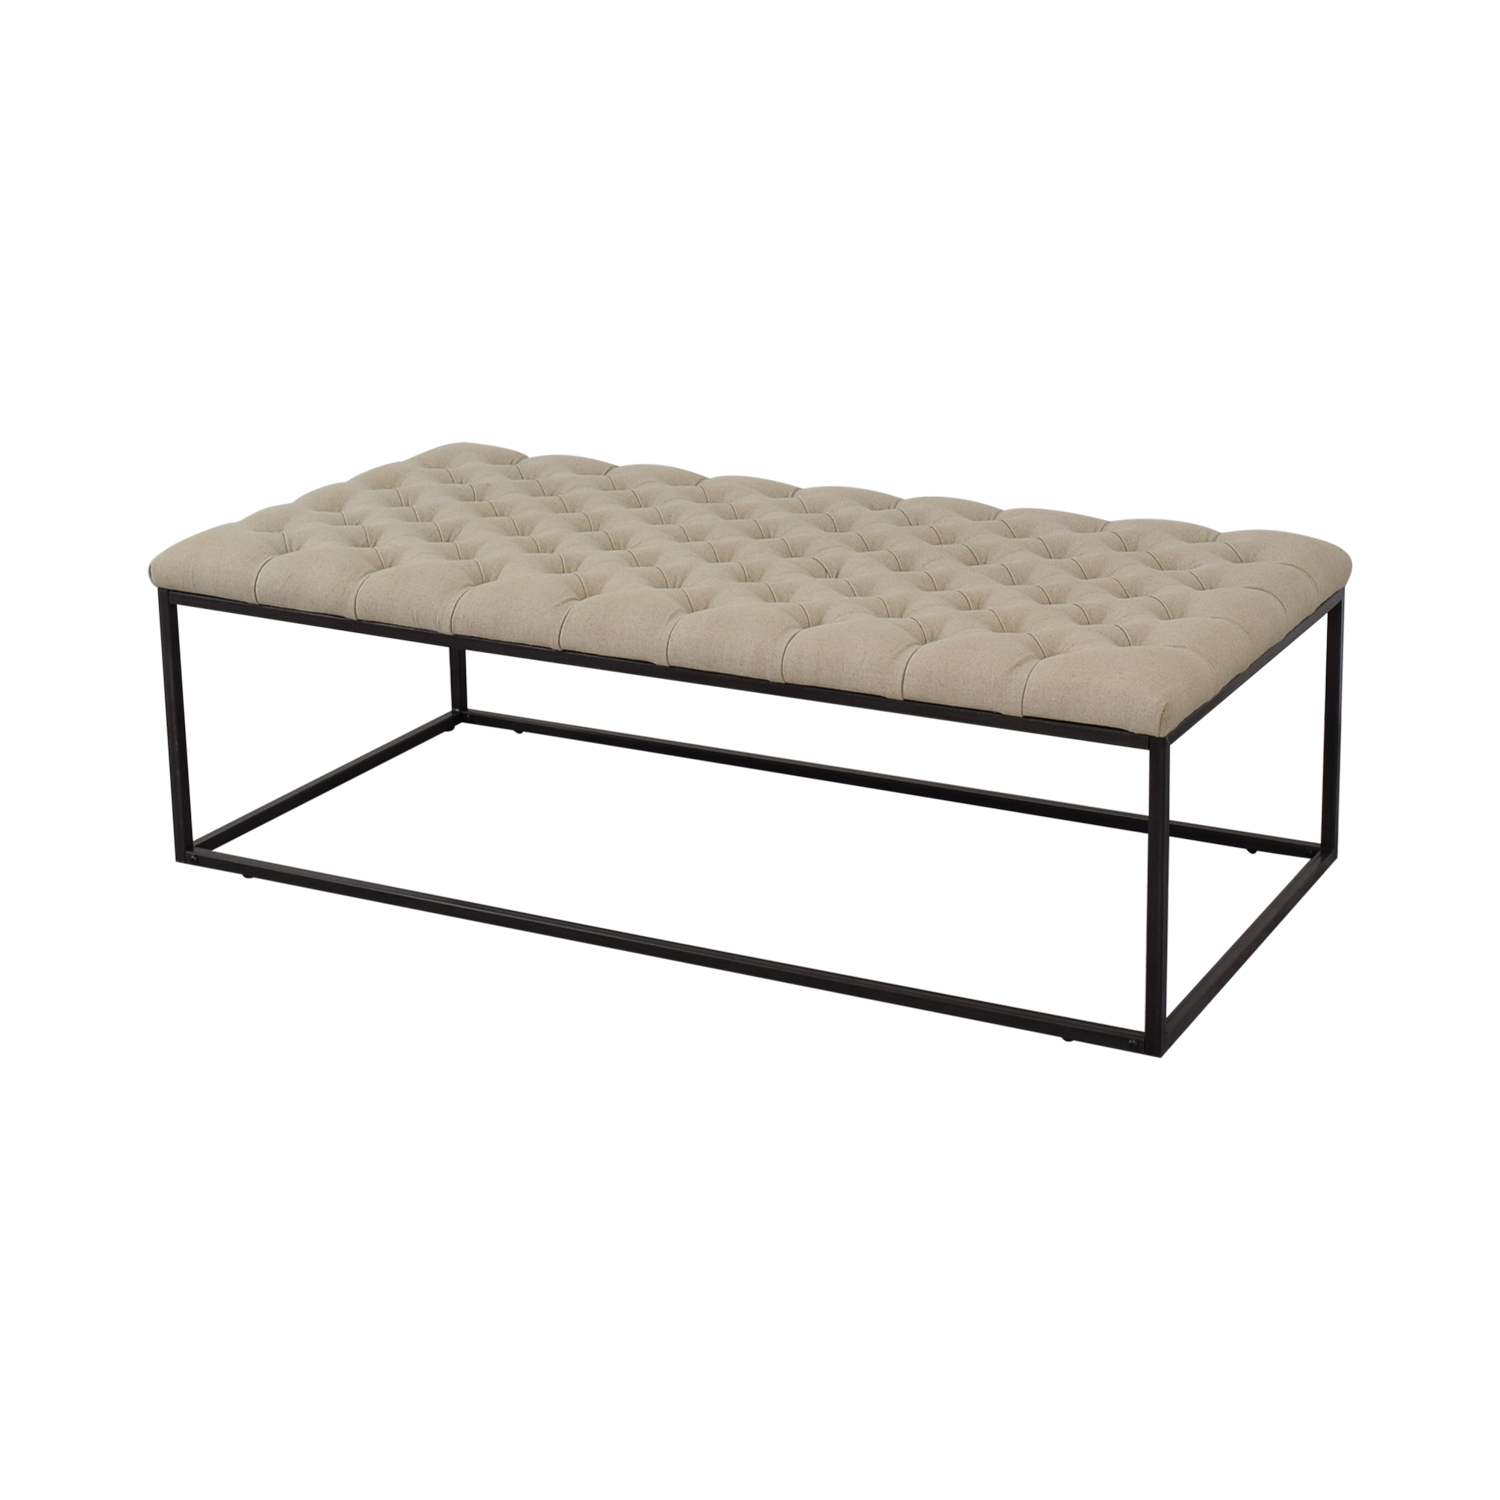 Classic Concepts Tufted Ottoman Bench / Chairs